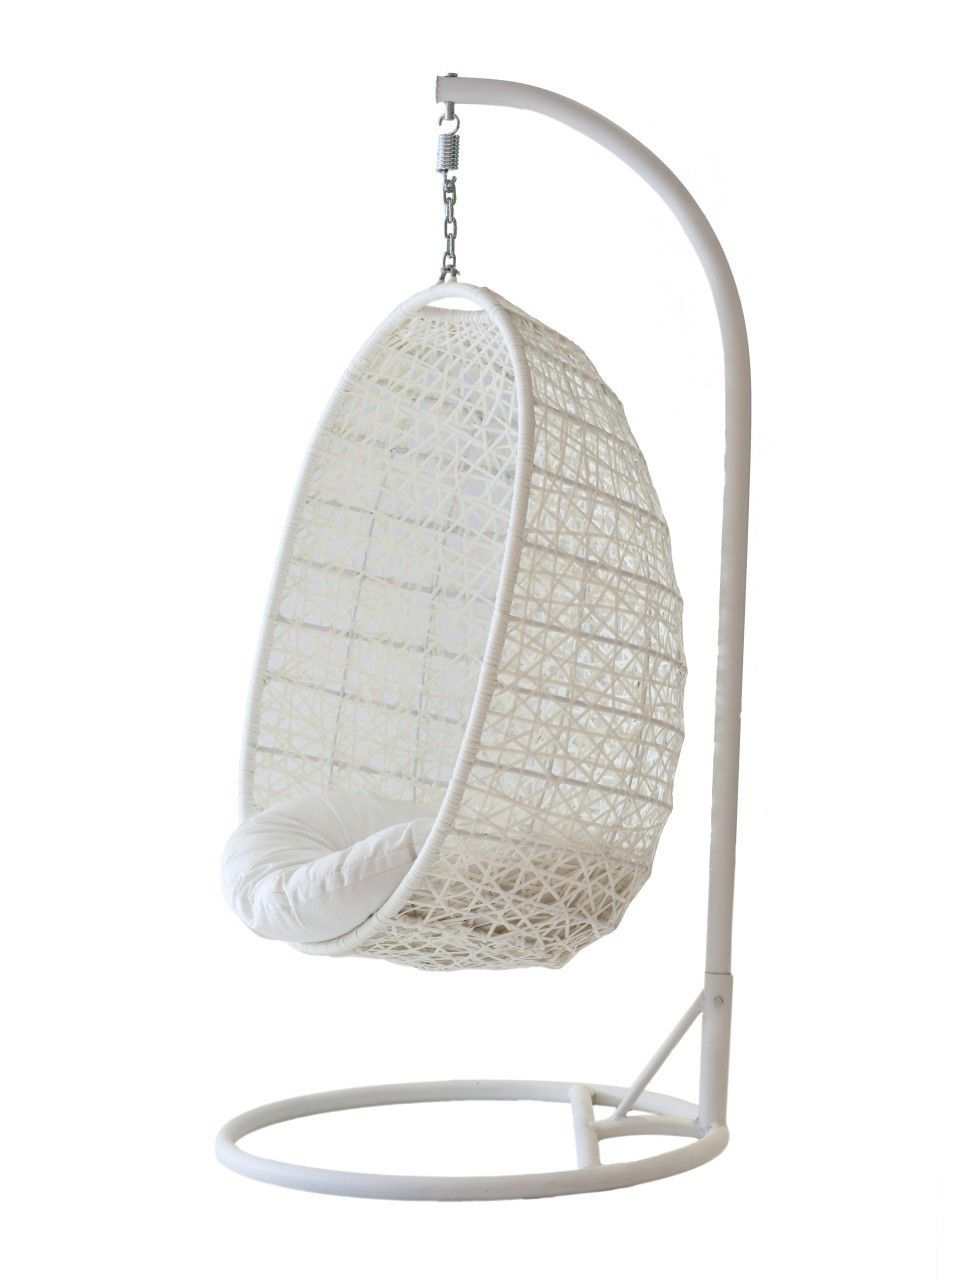 Affordable Hanging Chair For Bedroom Ikea Cool Chairs Indoor And Within At Bedrooms Ikeachair